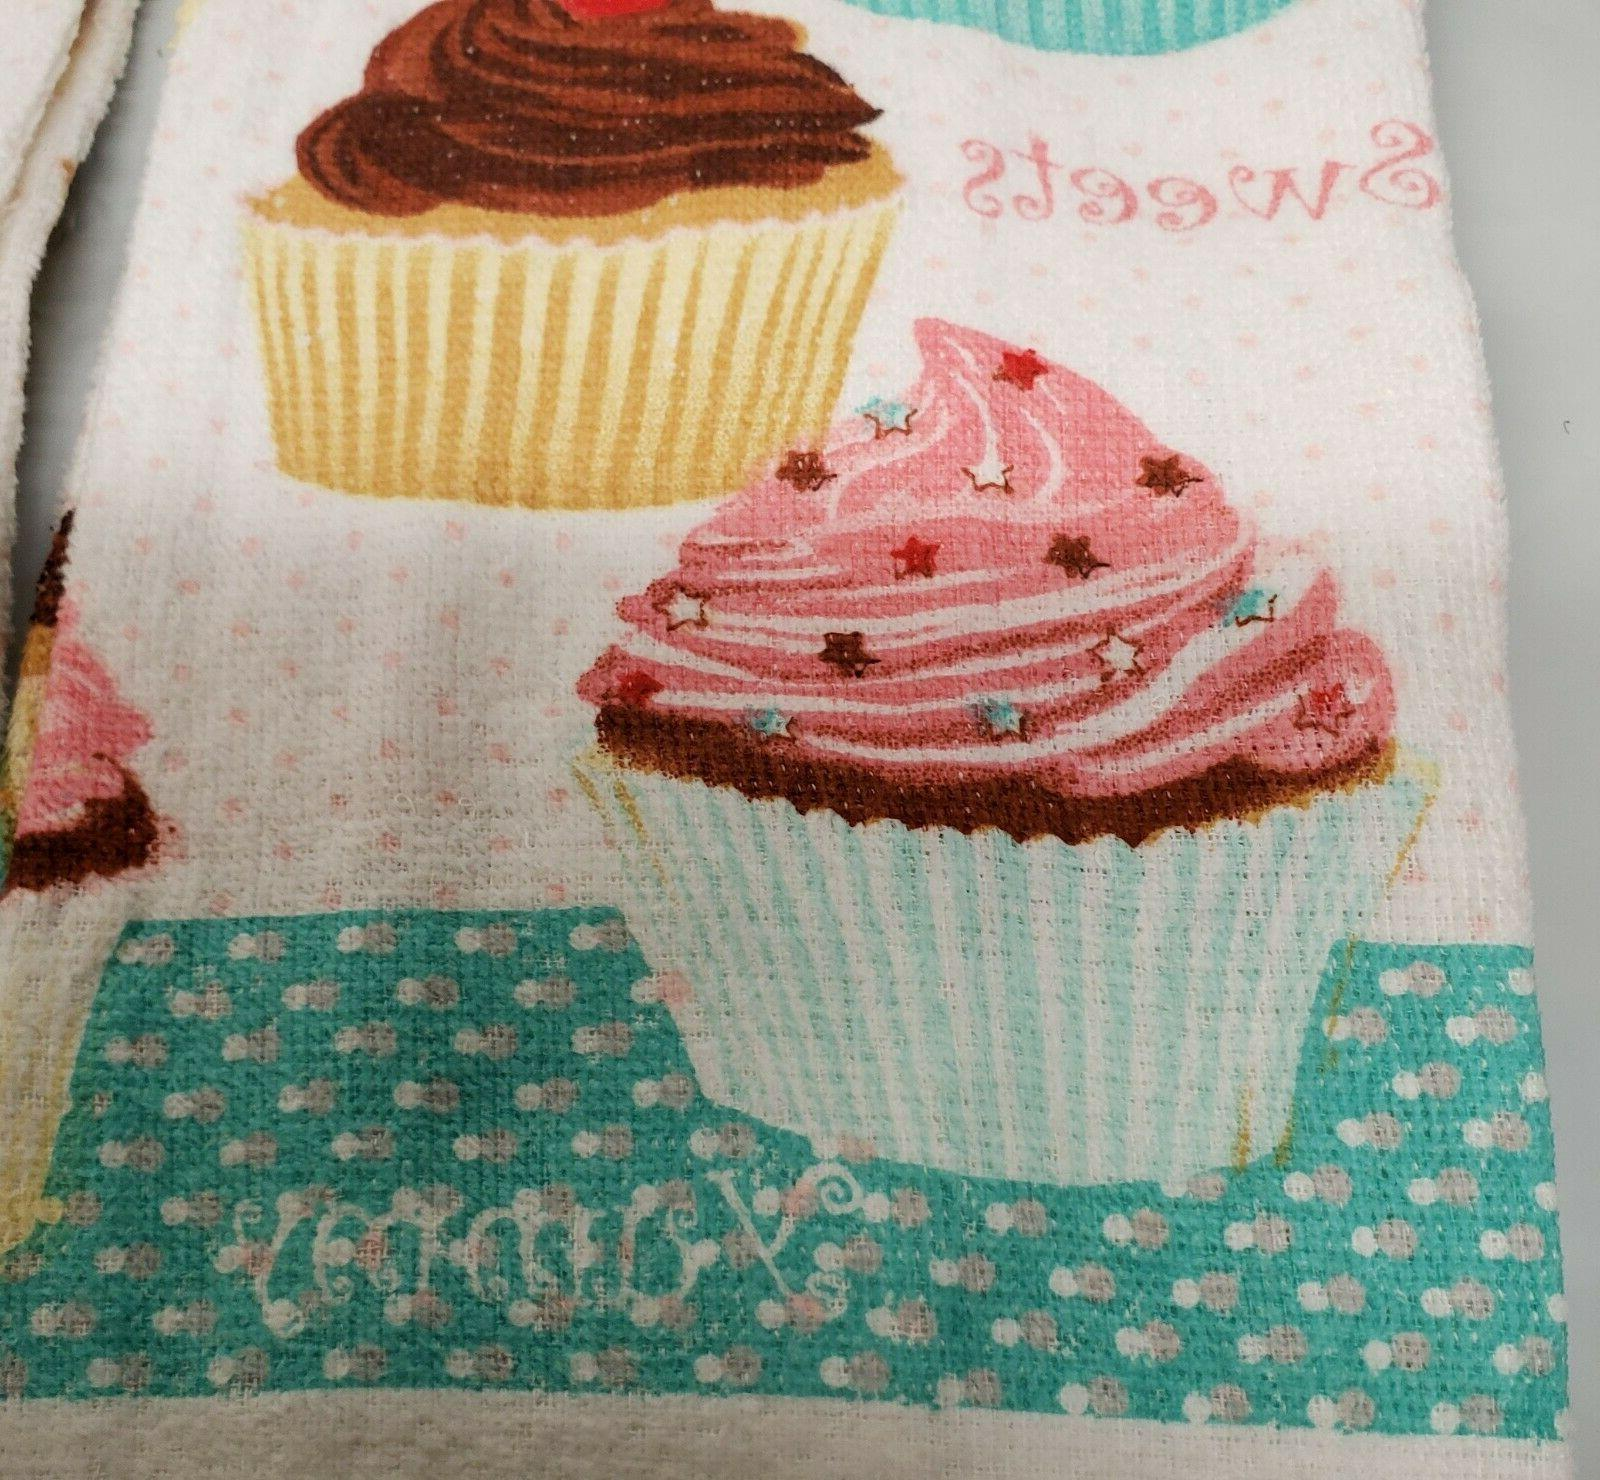 2 SAME KITCHEN TOWELS BUNCH OF CUPCAKES,